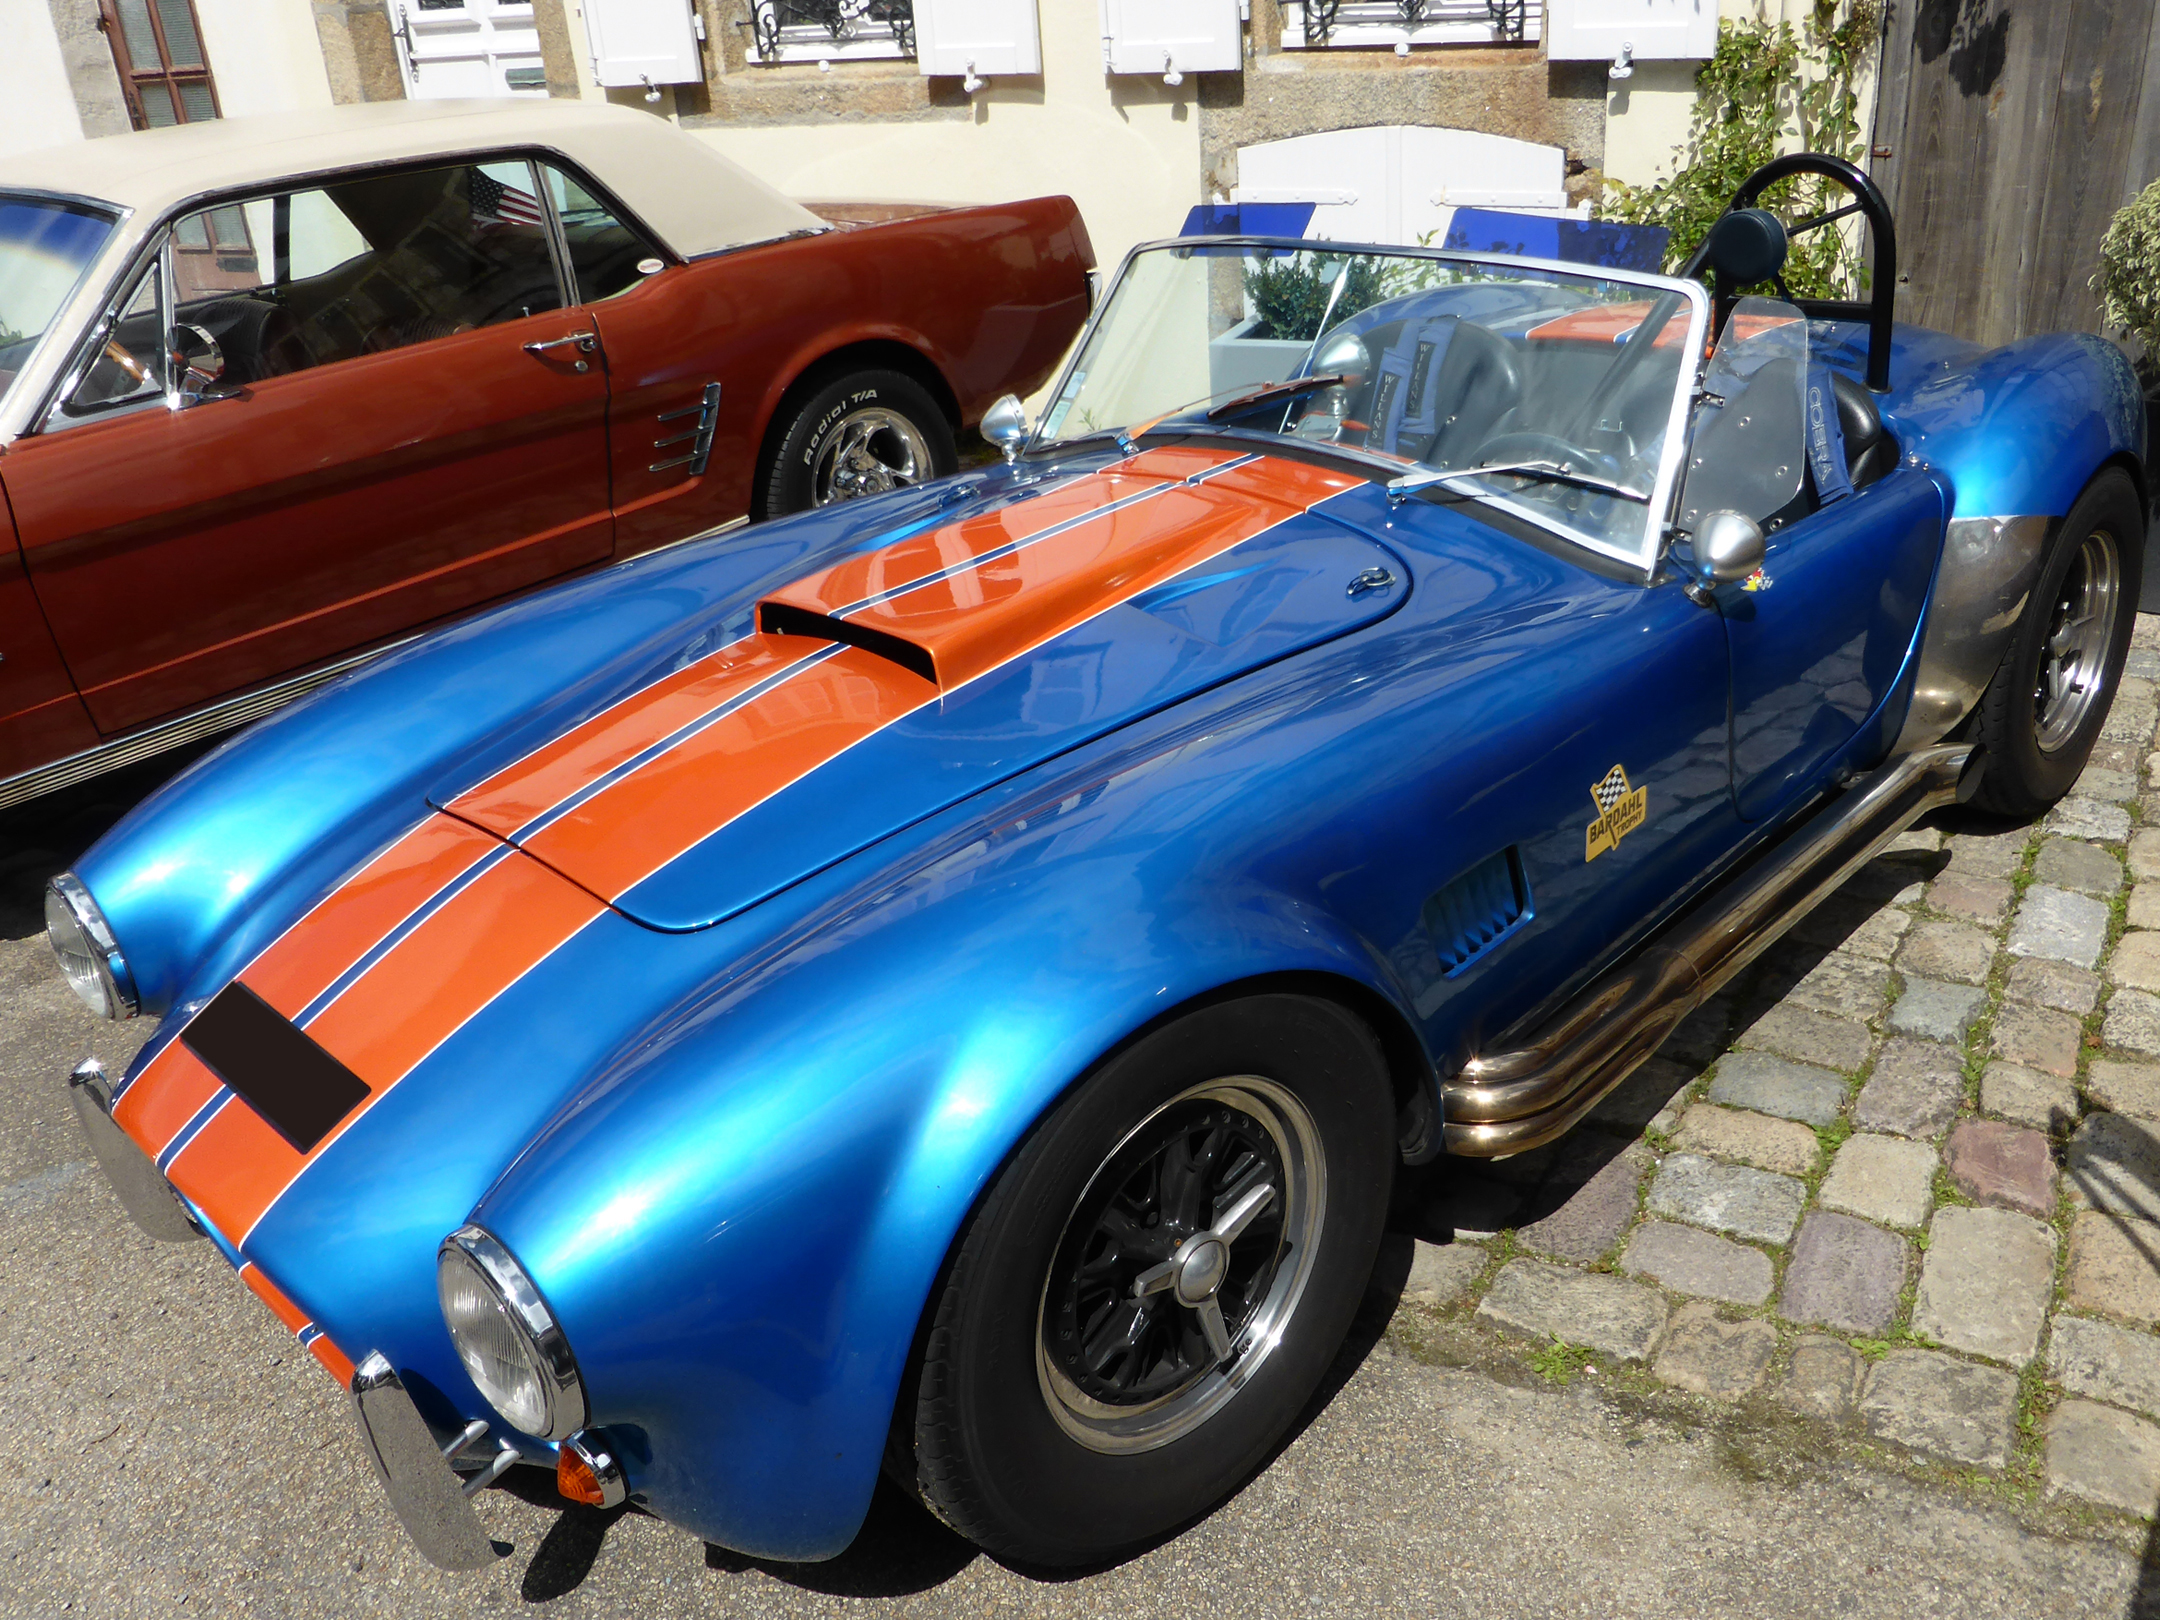 Shelby Cobra 427 S/C - Blue With Orange Stripes - 1965 - front side-face - US Cars and Bikes 2017 - Photo by ELJ